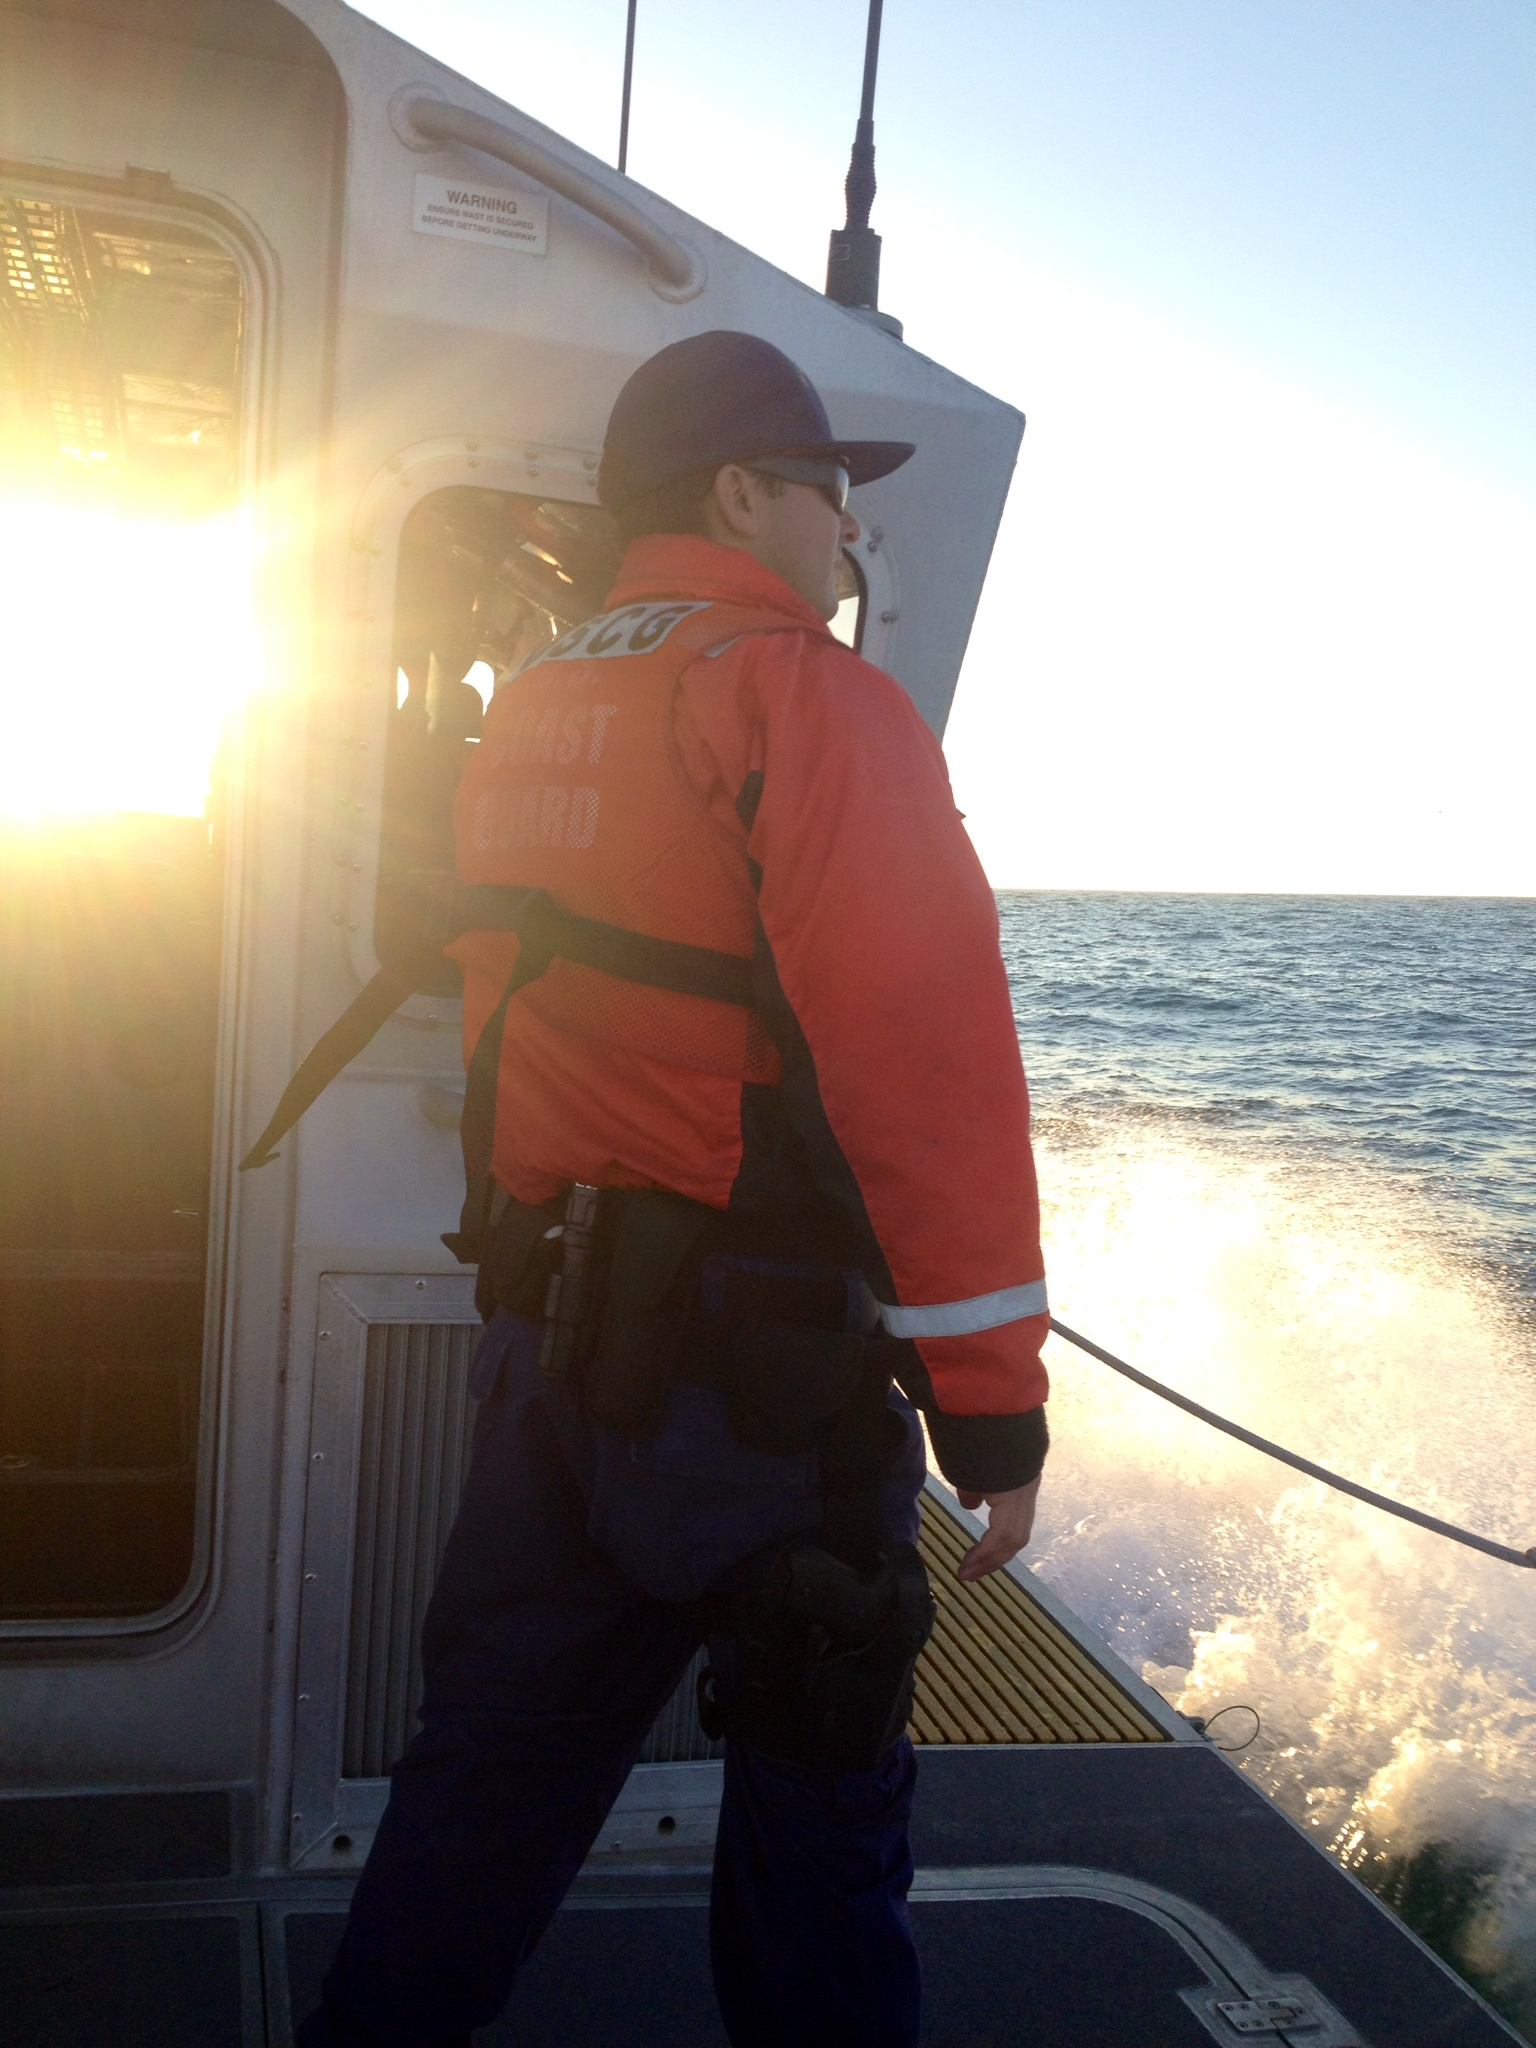 out on patrol in the Santa Barbara Channel.